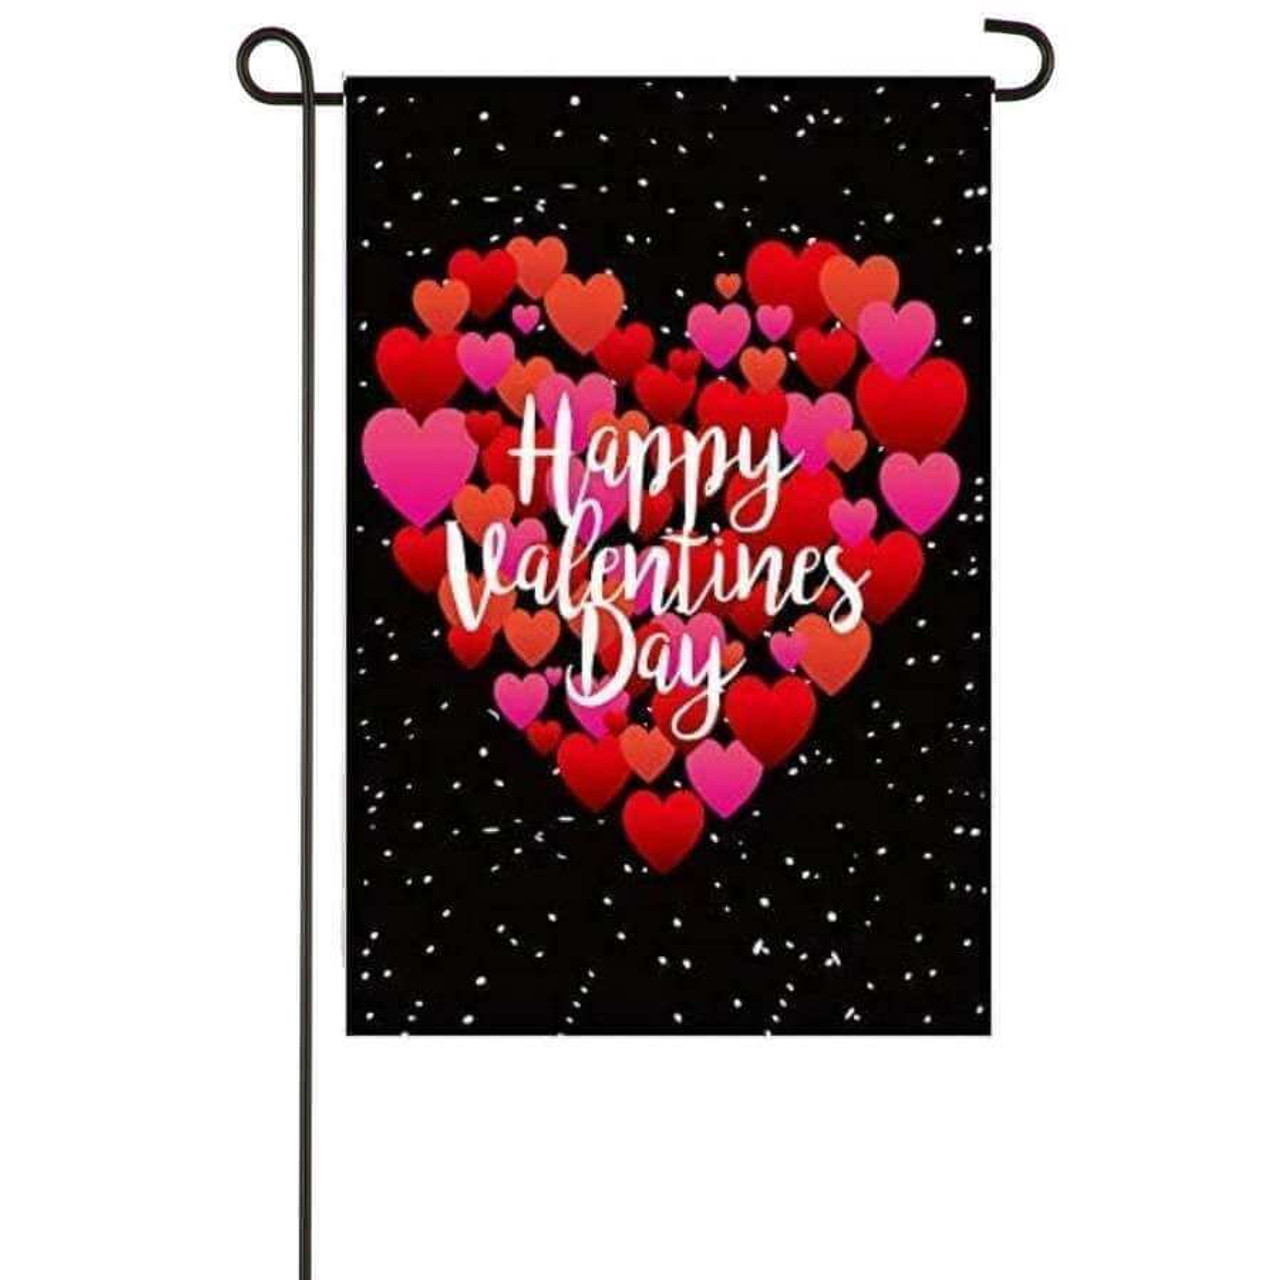 Valentine's Day Hearts garden banner features a heart made up of various hearts in all shades of pink and red.  The heart stands out against a black background.